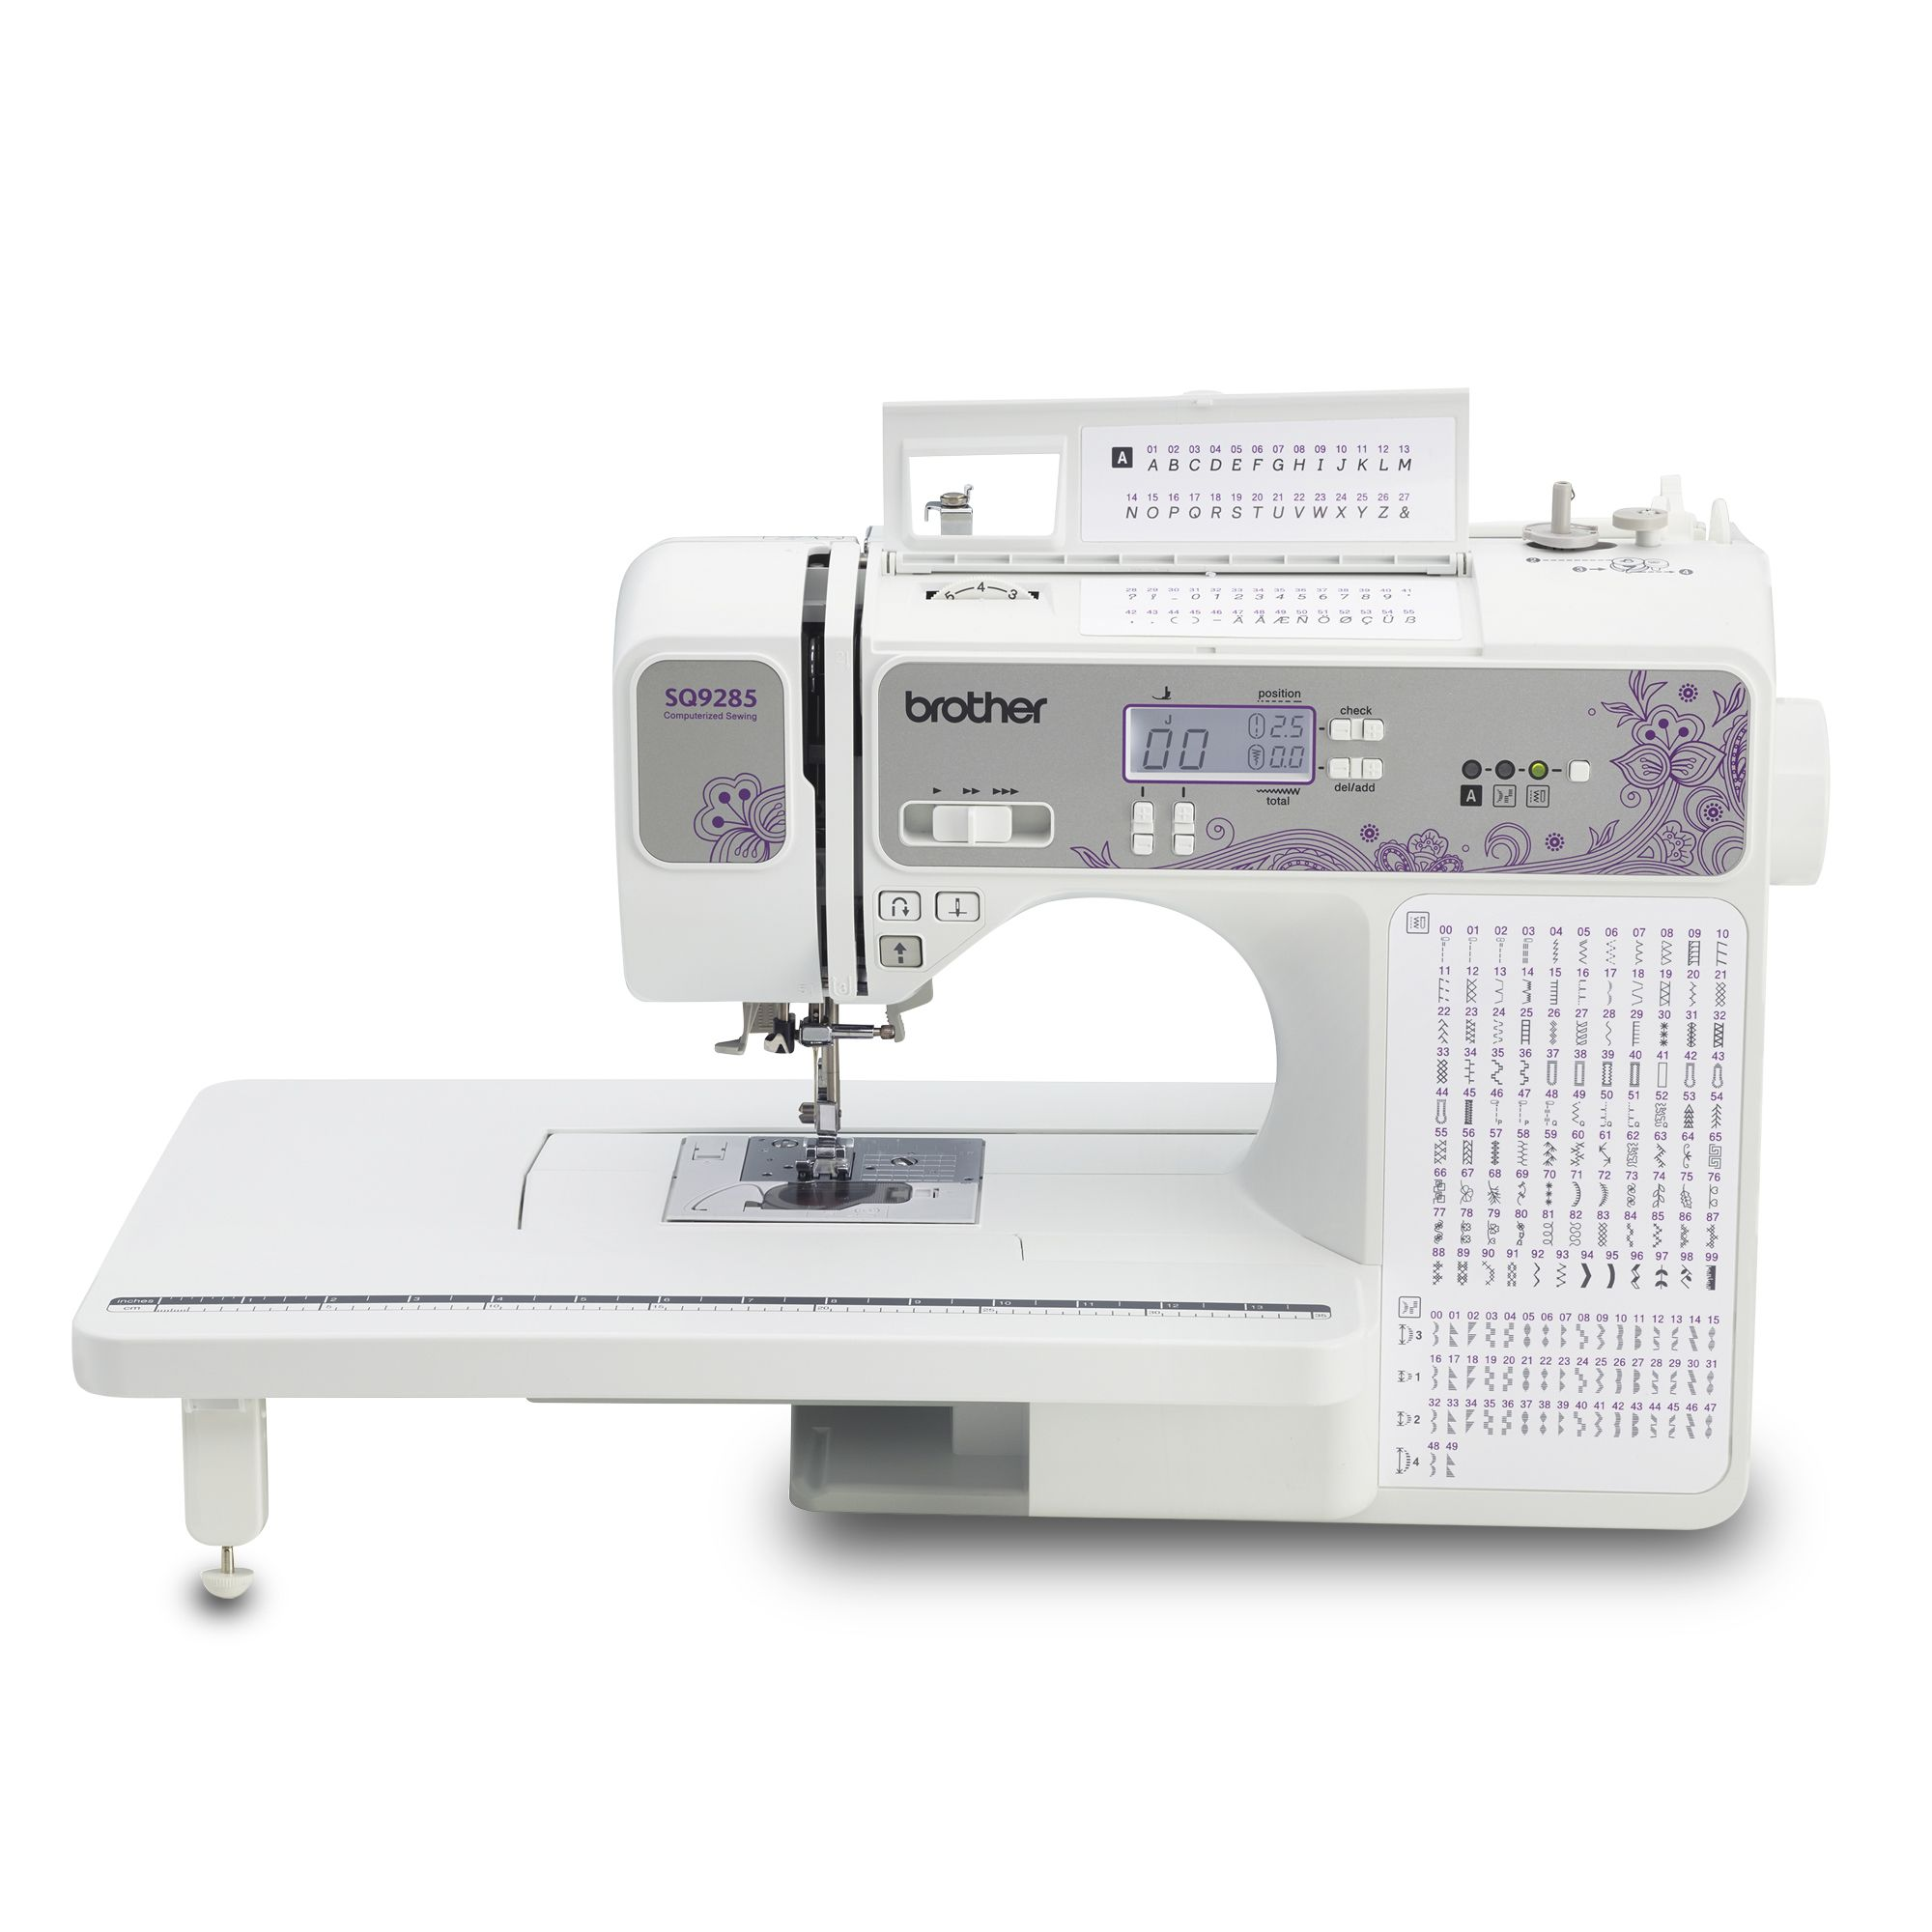 Arts Crafts Sewing In 2020 Computerized Sewing Machine